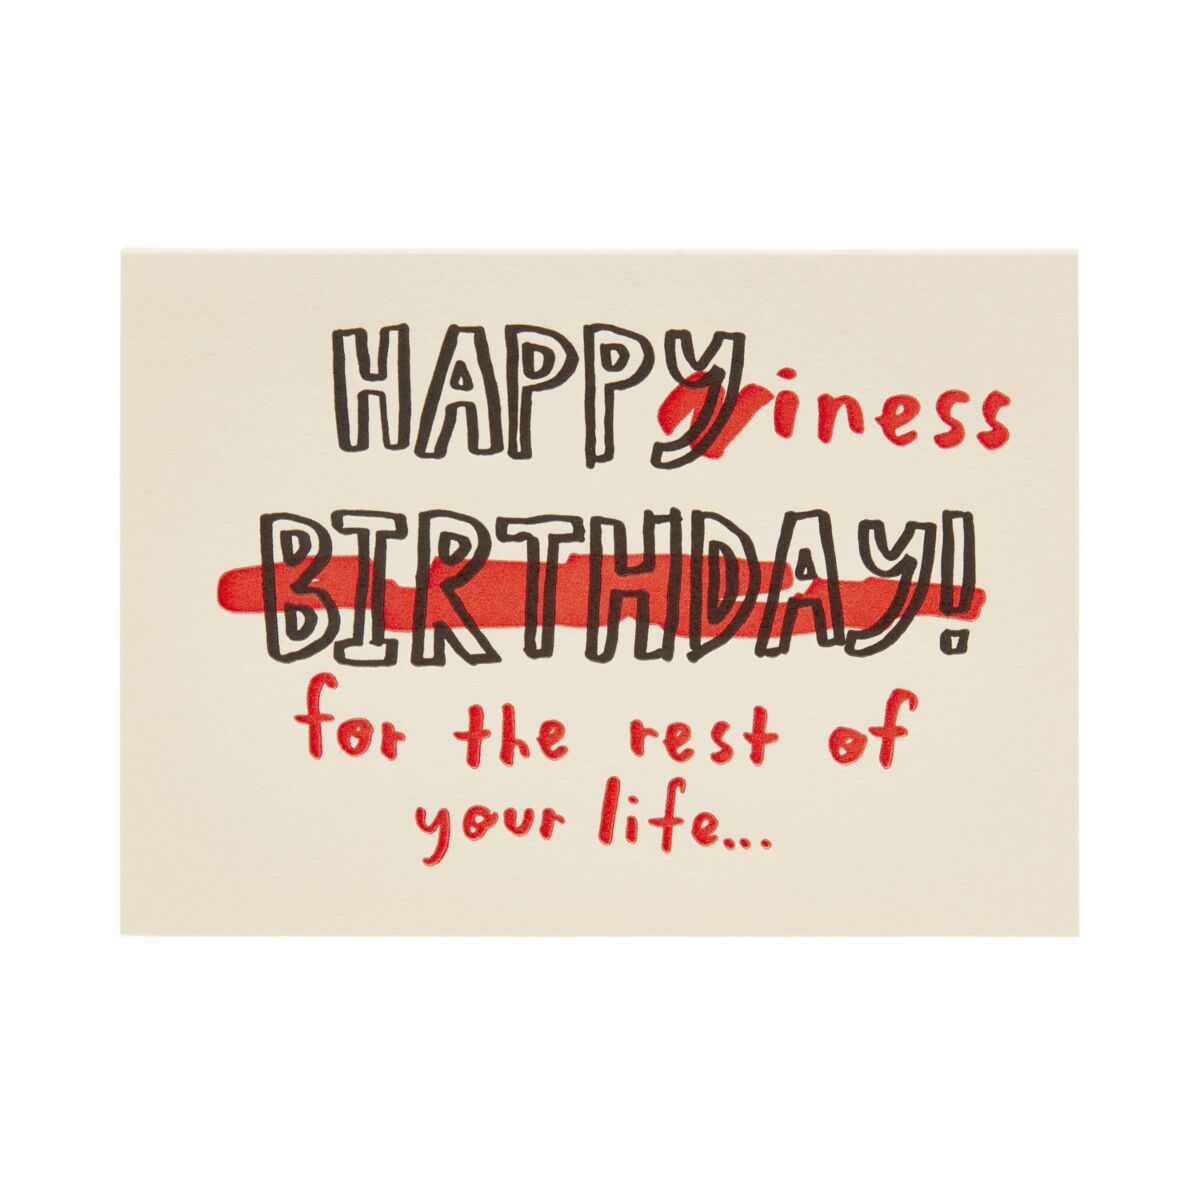 Happiness Birthday Card image